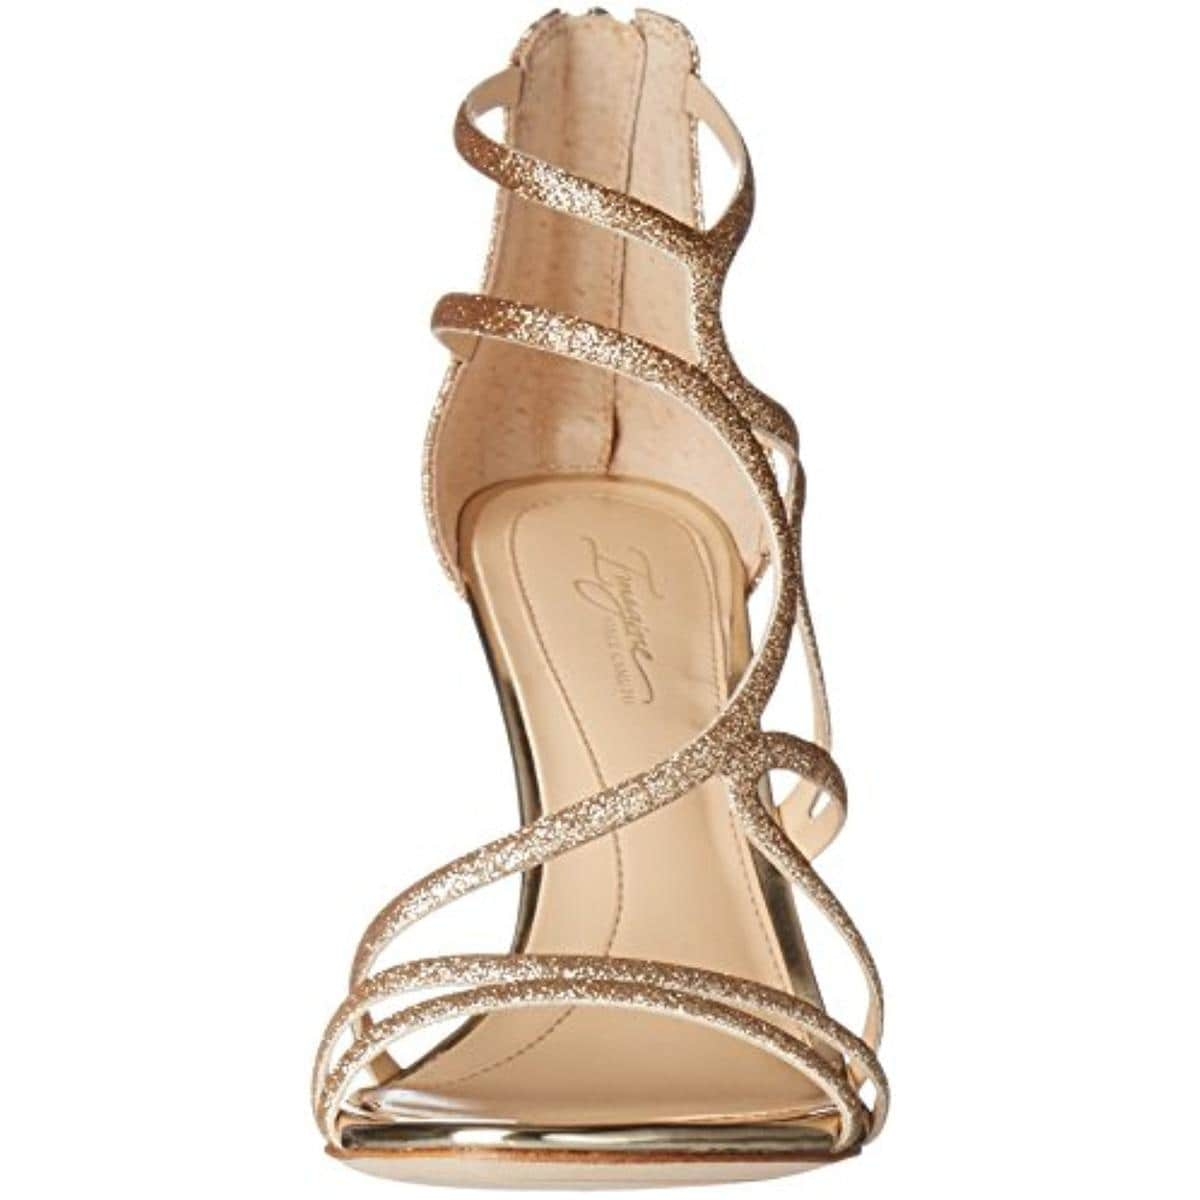 105afd6eaff Shop Imagine Vince Camuto Womens Ranee Evening Heels Glitter Ankle - Free  Shipping On Orders Over  45 - Overstock - 21026956